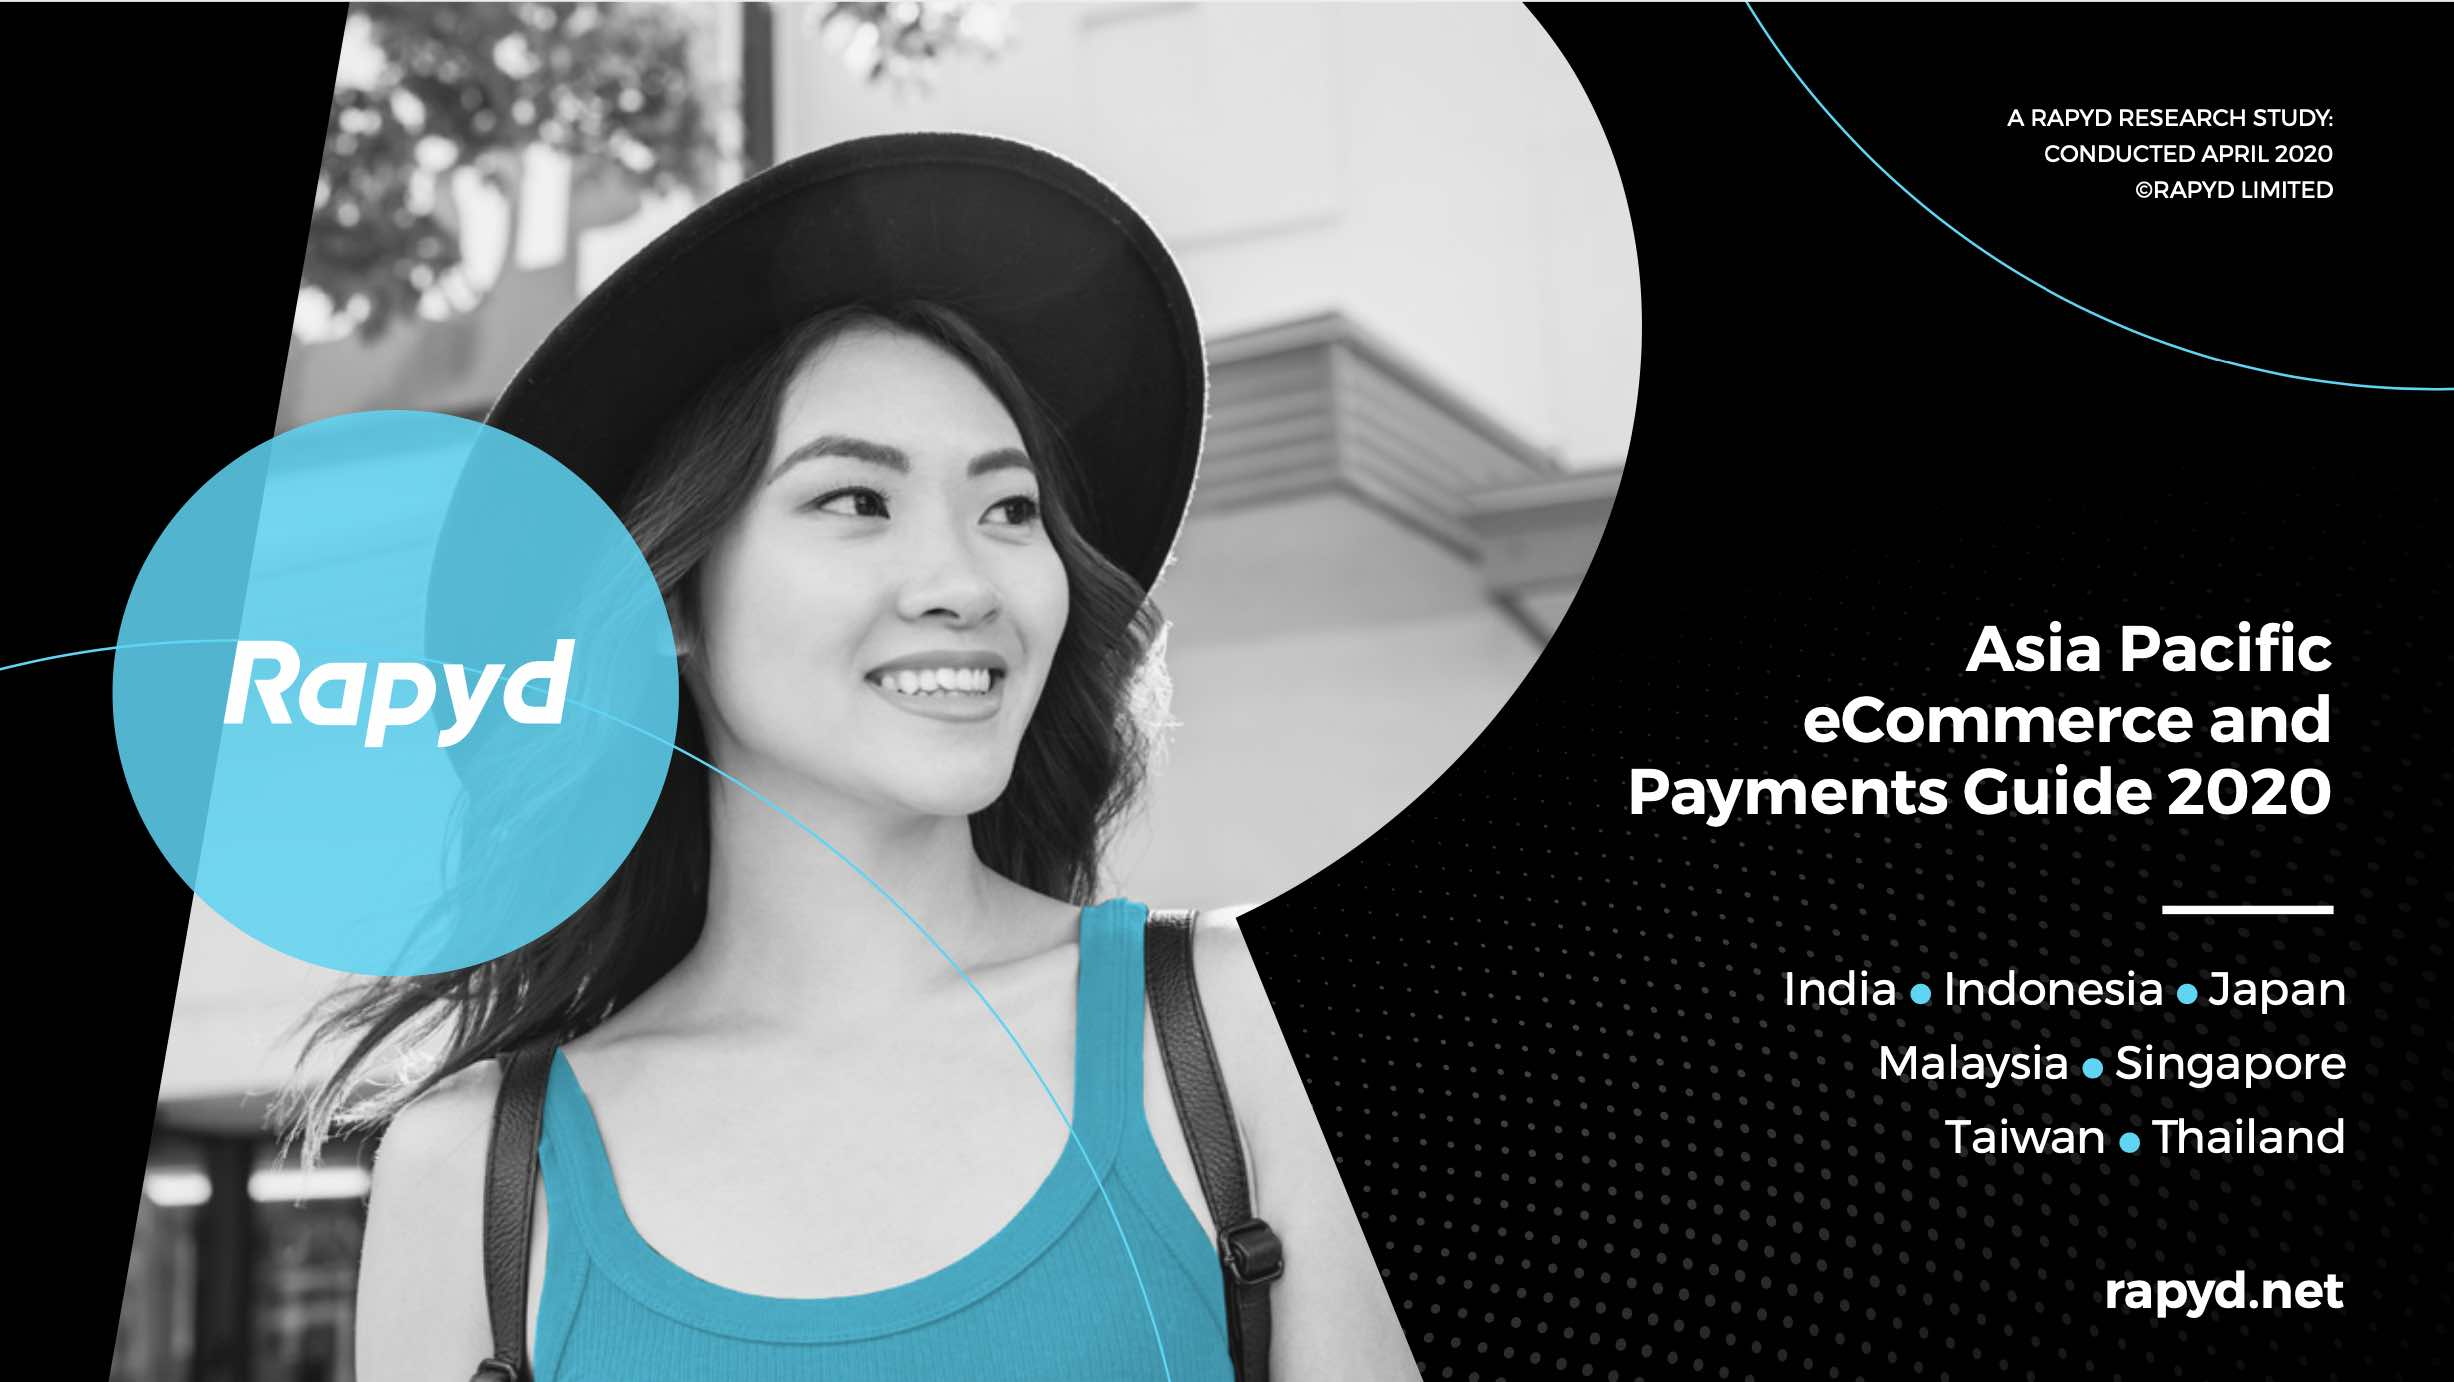 Asia Pacific eCommerce and Payments Guide